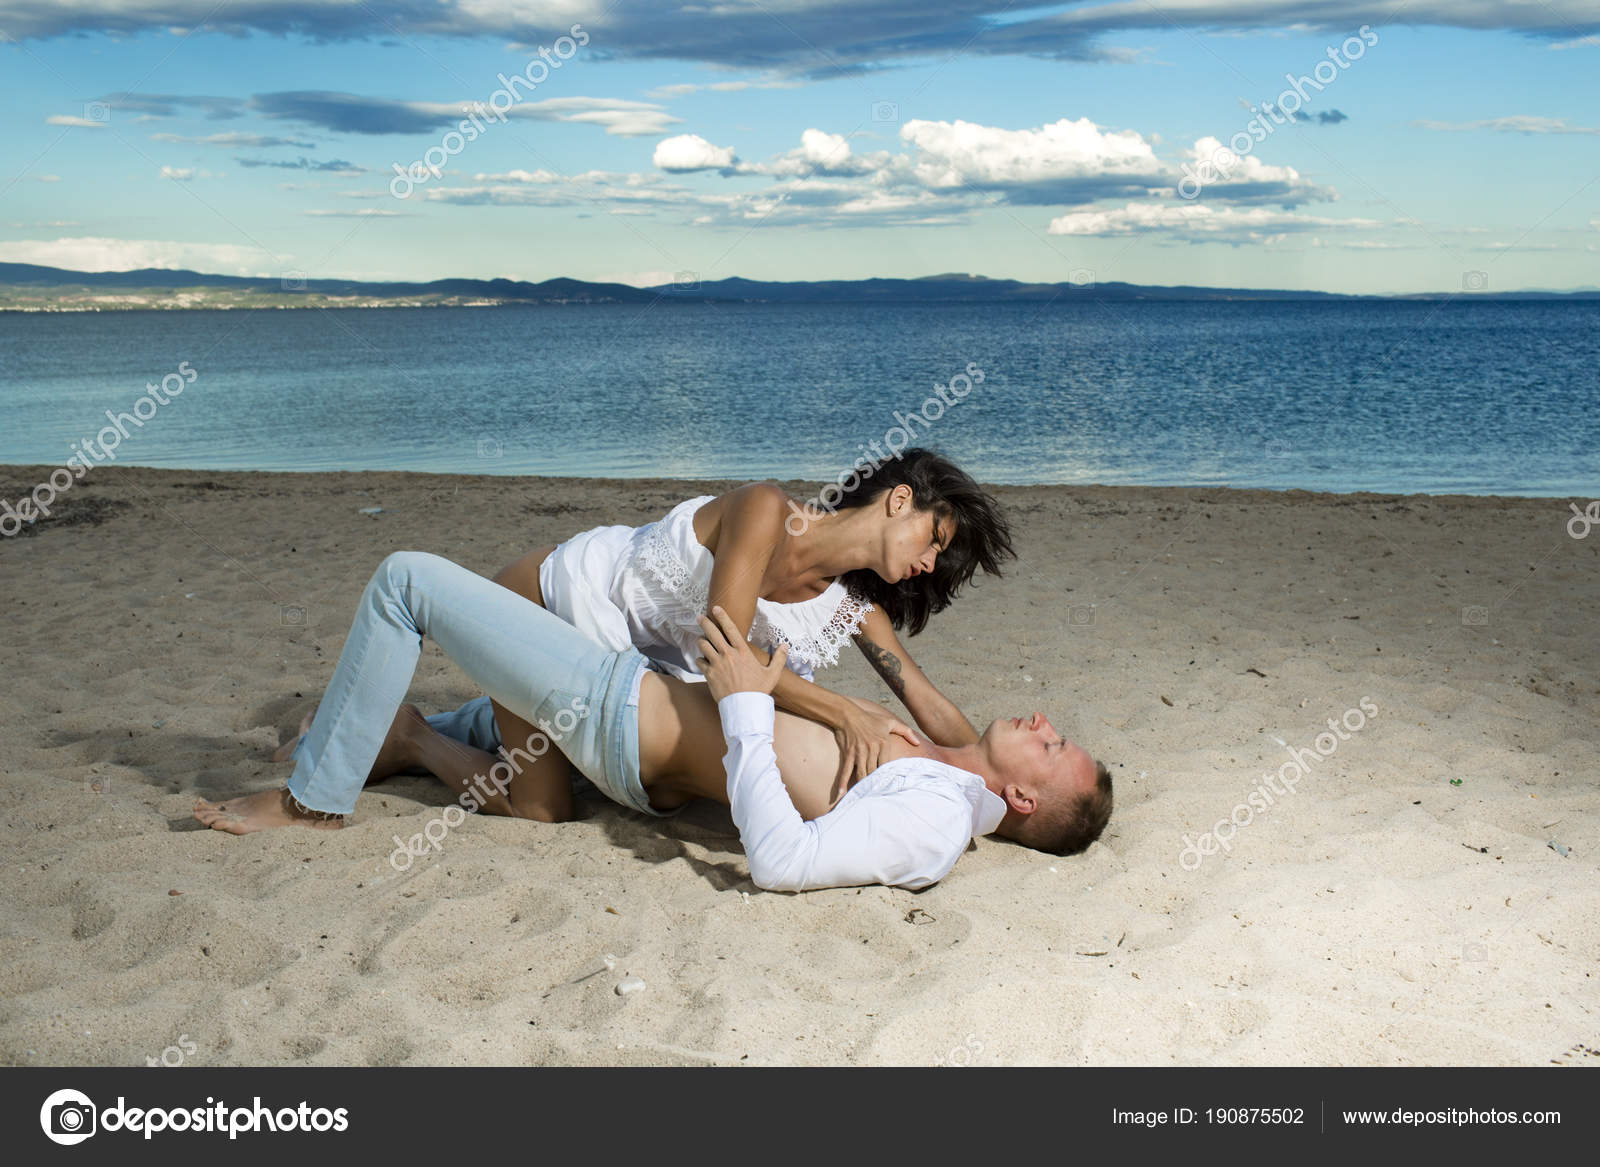 Sex On Beach Concept Couple Full Of Desire Have Sex On Sand Of Seashore Sensual Lovers Making Love At Seashore Sea On Background